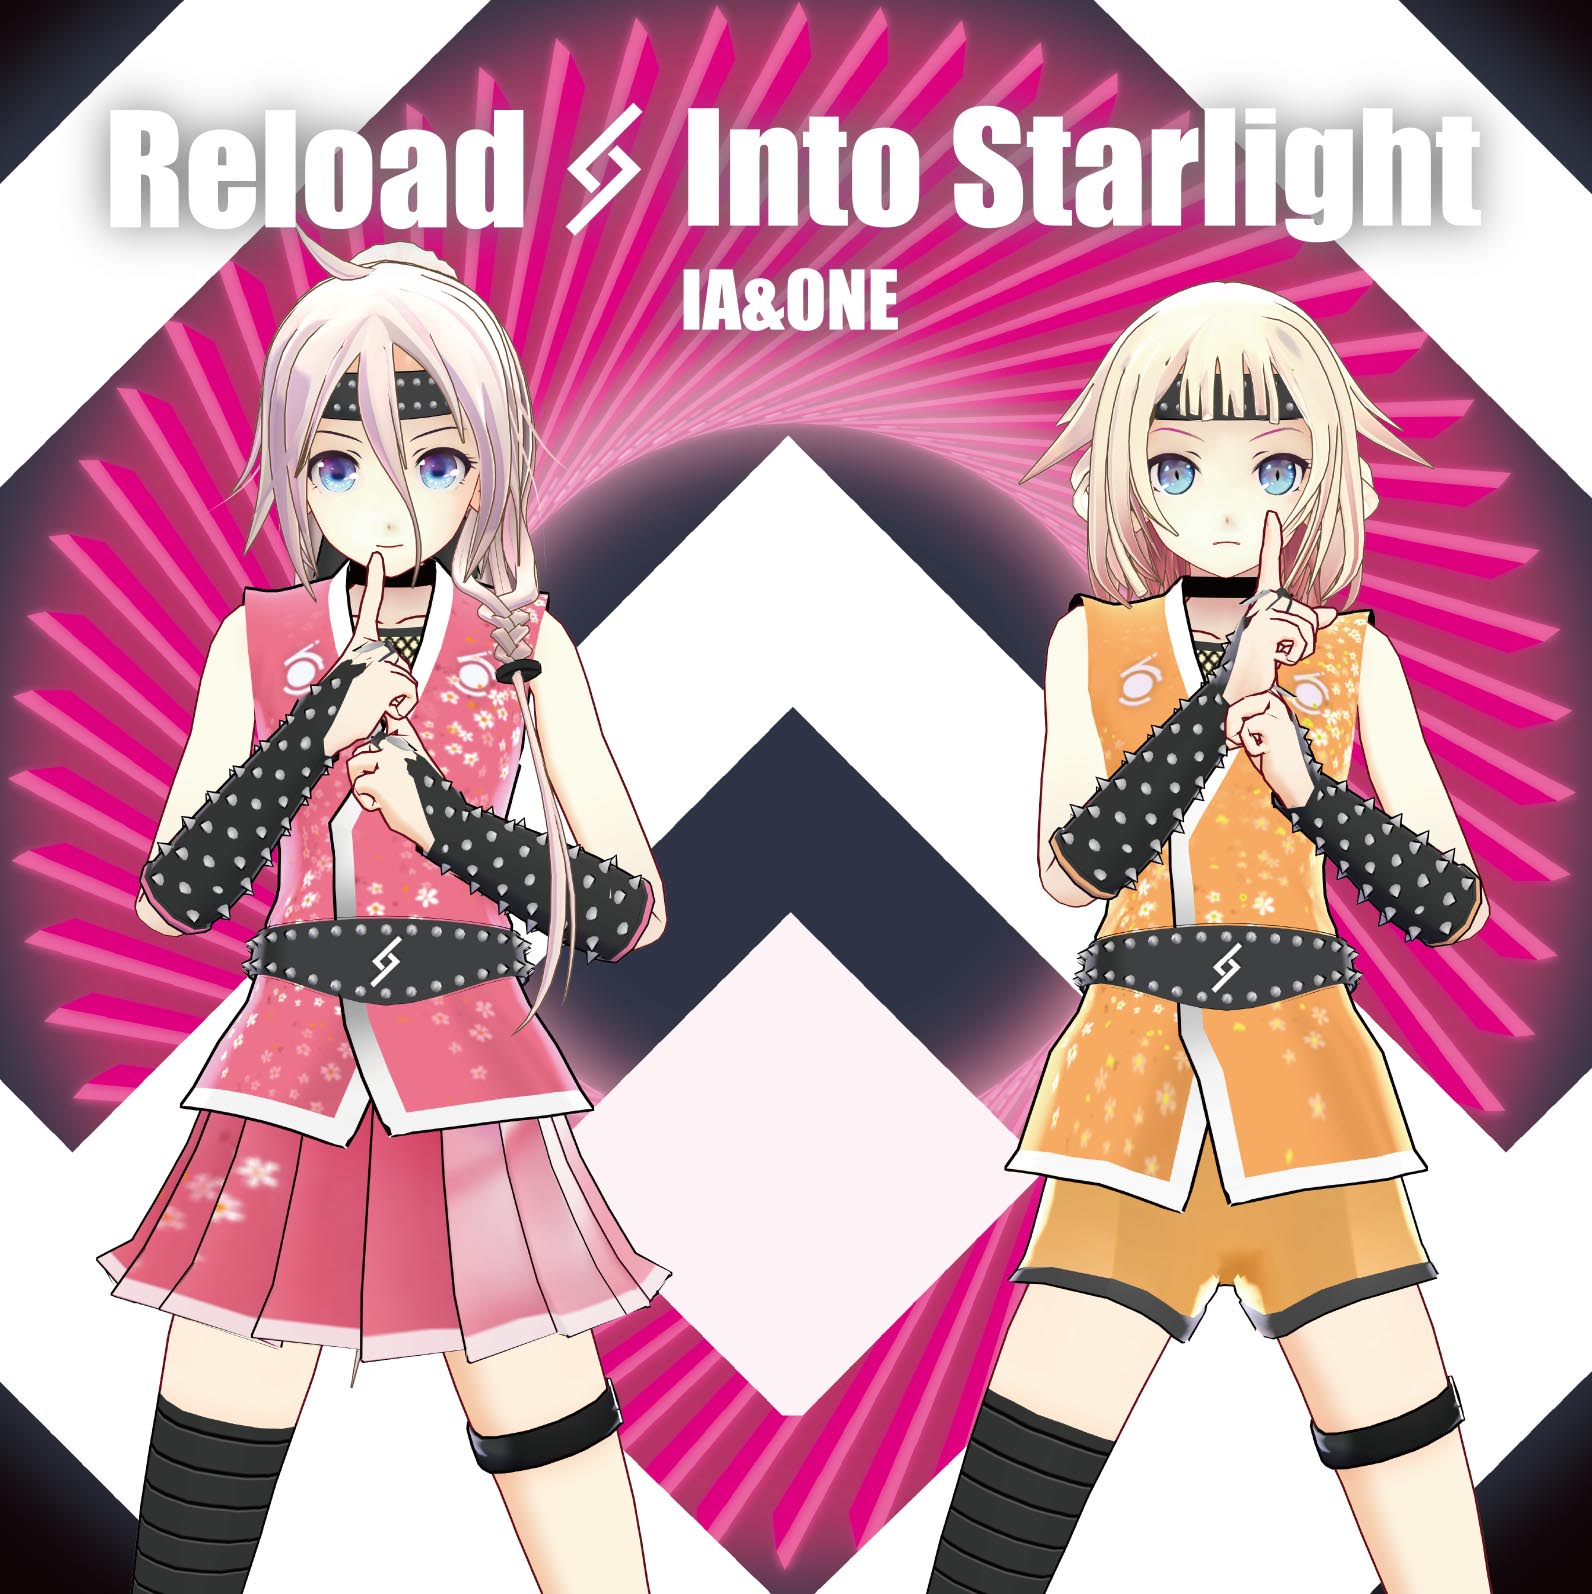 Reload & Into Starlight IA 5th & ONE 2nd Anniversary  -SPECIAL AR LIVE SHOWCASE -